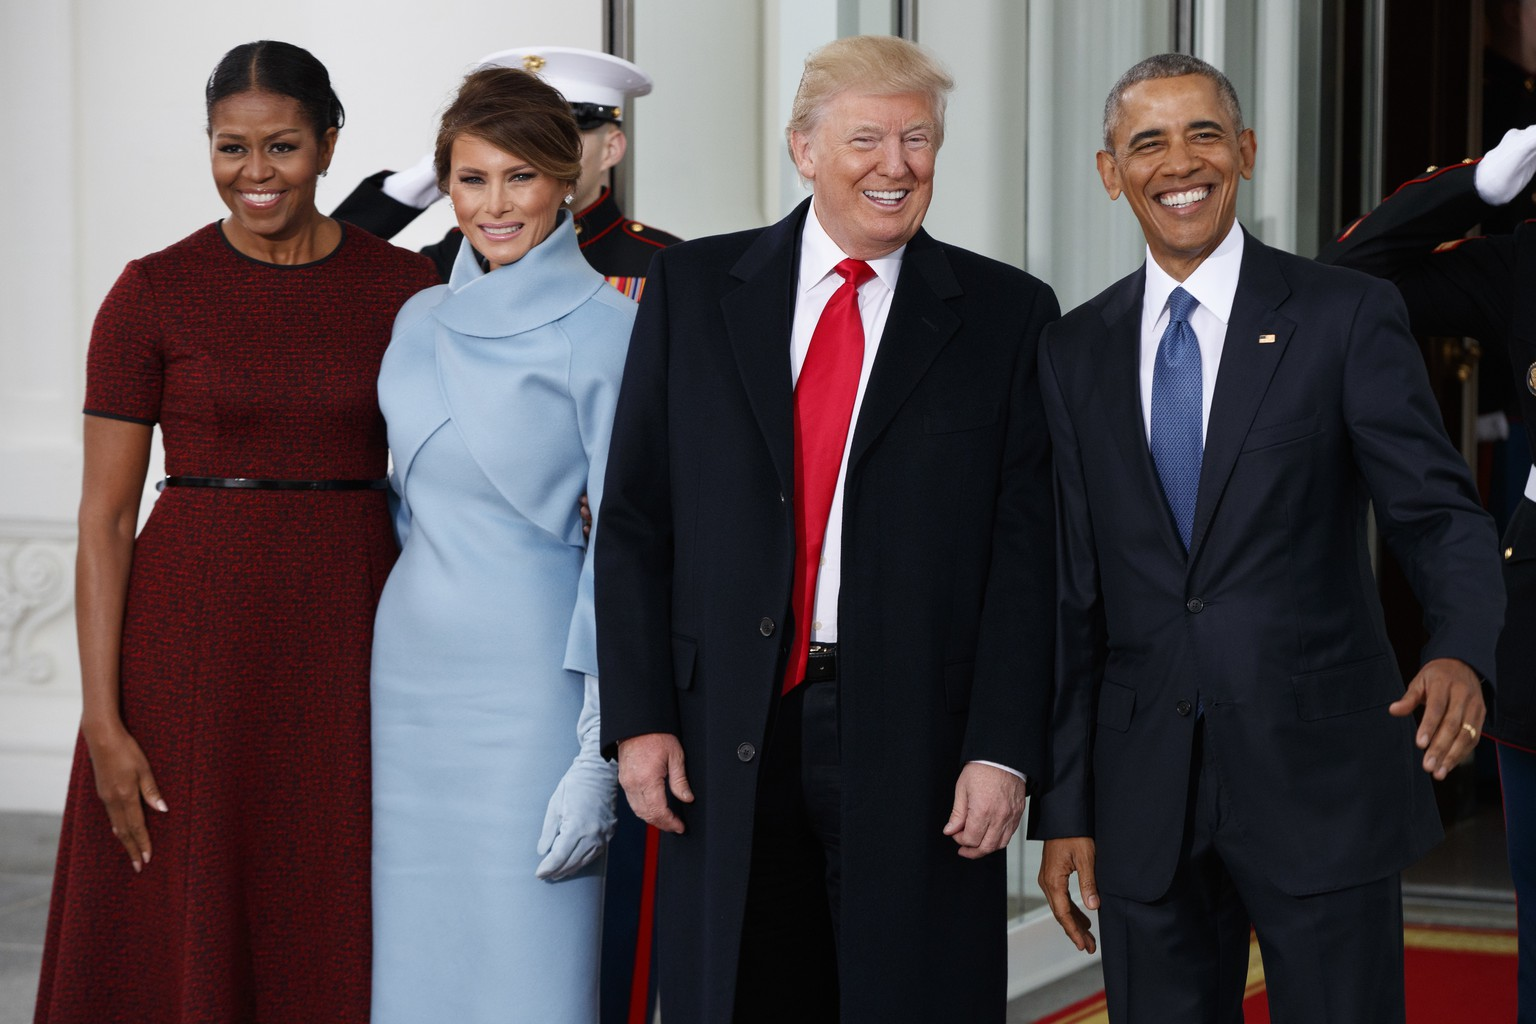 President Barack Obama, first lady Michelle Obama, President-elect Donald Trump and Melania Trump stand at the White House in Washington, Friday, Jan. 20, 2017. (AP Photo/Evan Vucci)